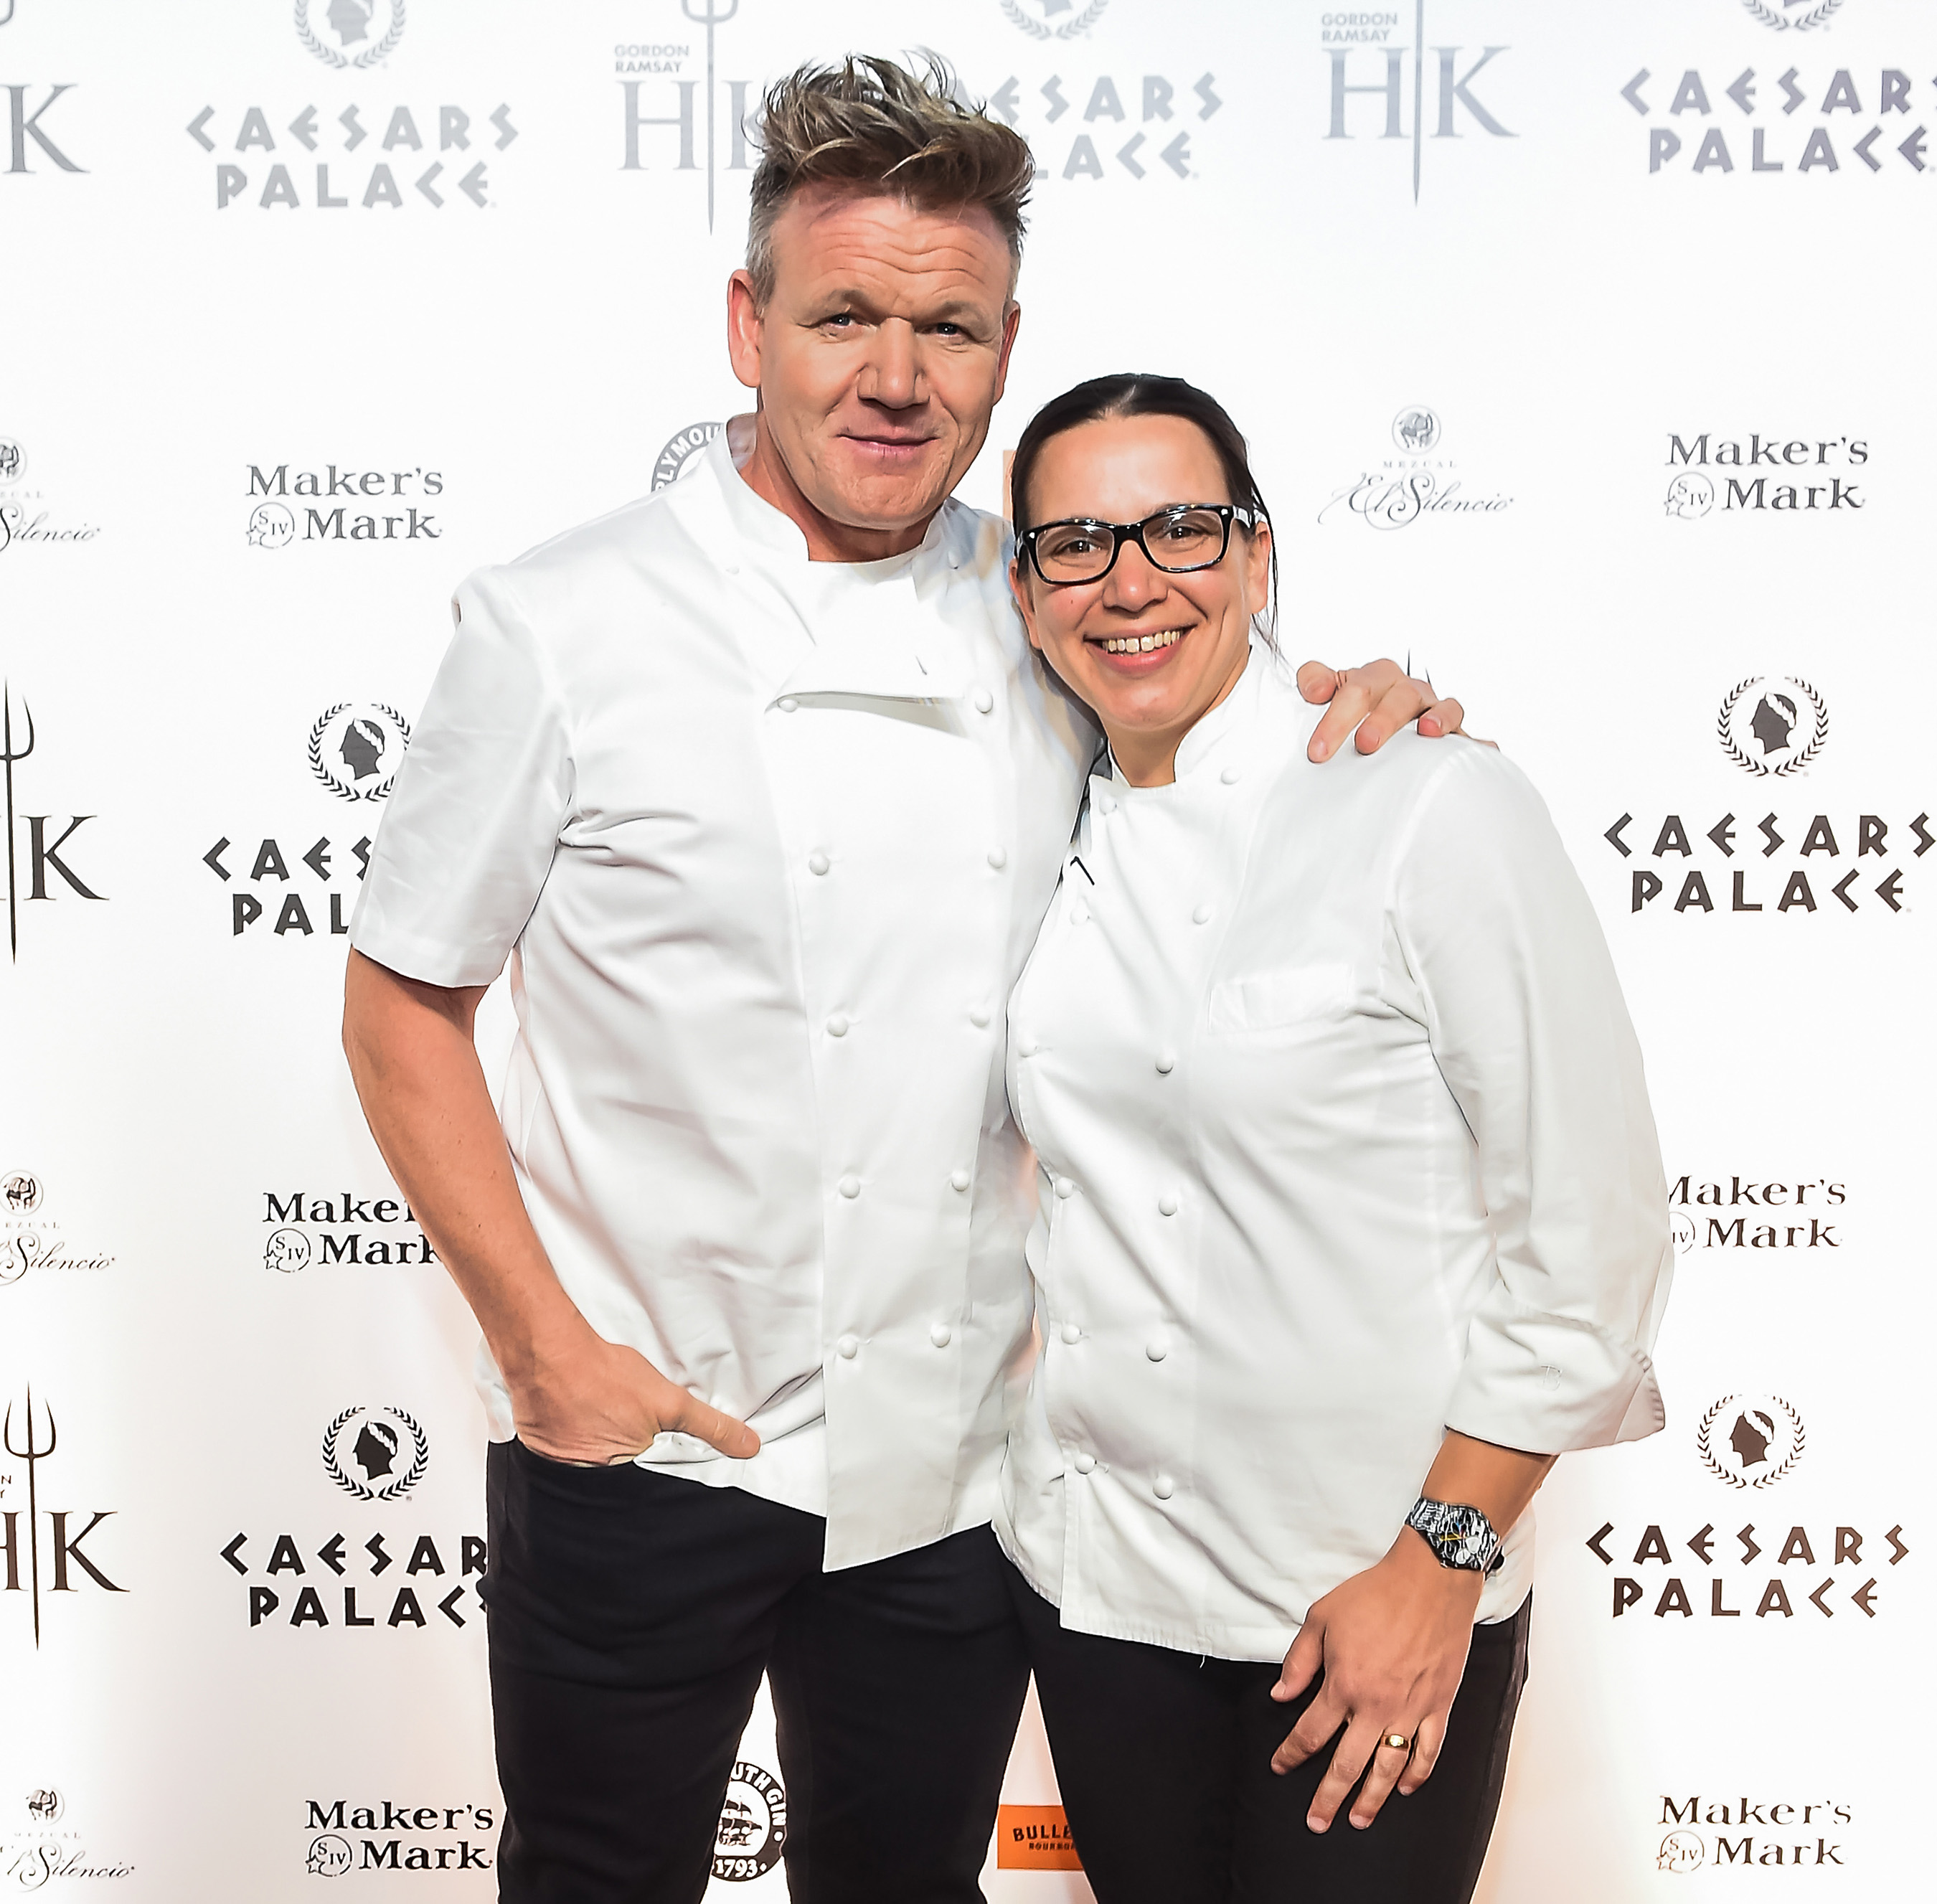 World's First Gordon Ramsay HELL'S KITCHEN Restaurant